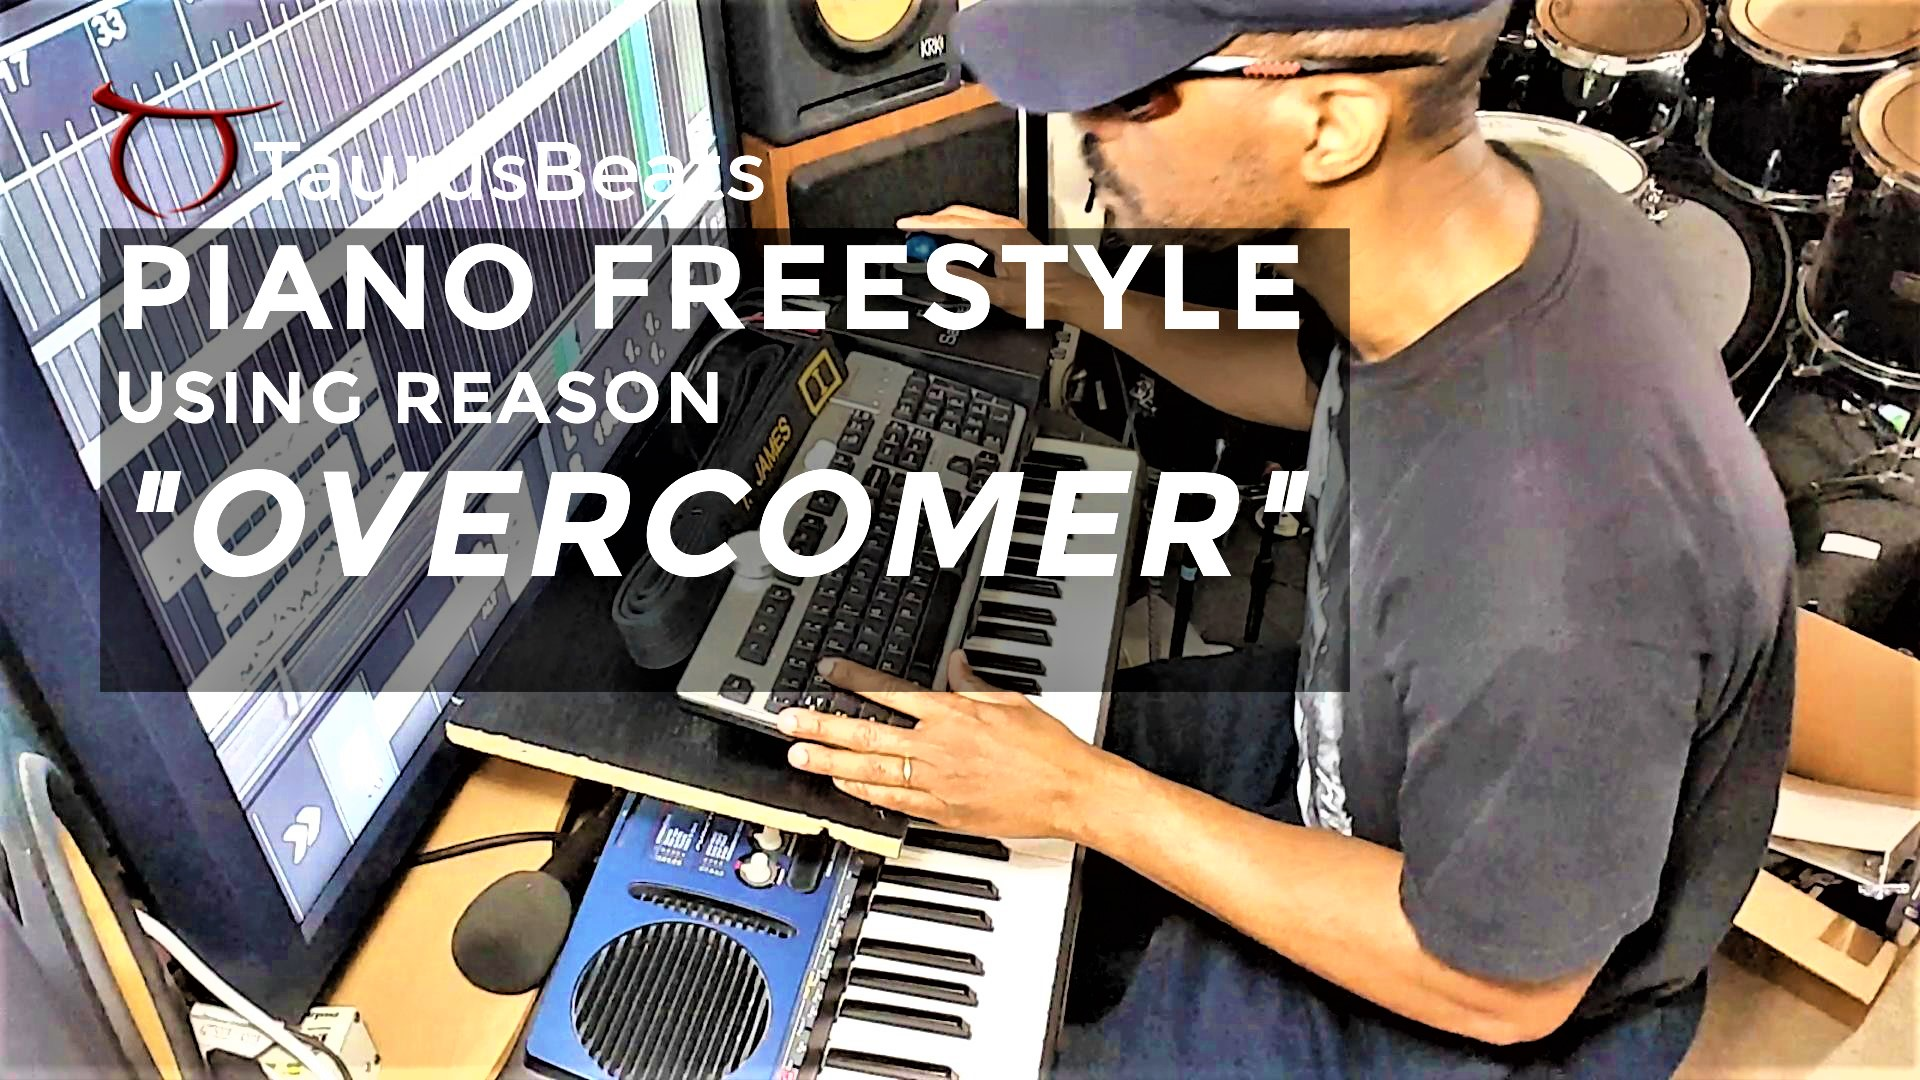 image for Making A Piano Freestyle Beat In Reason - Overcomer